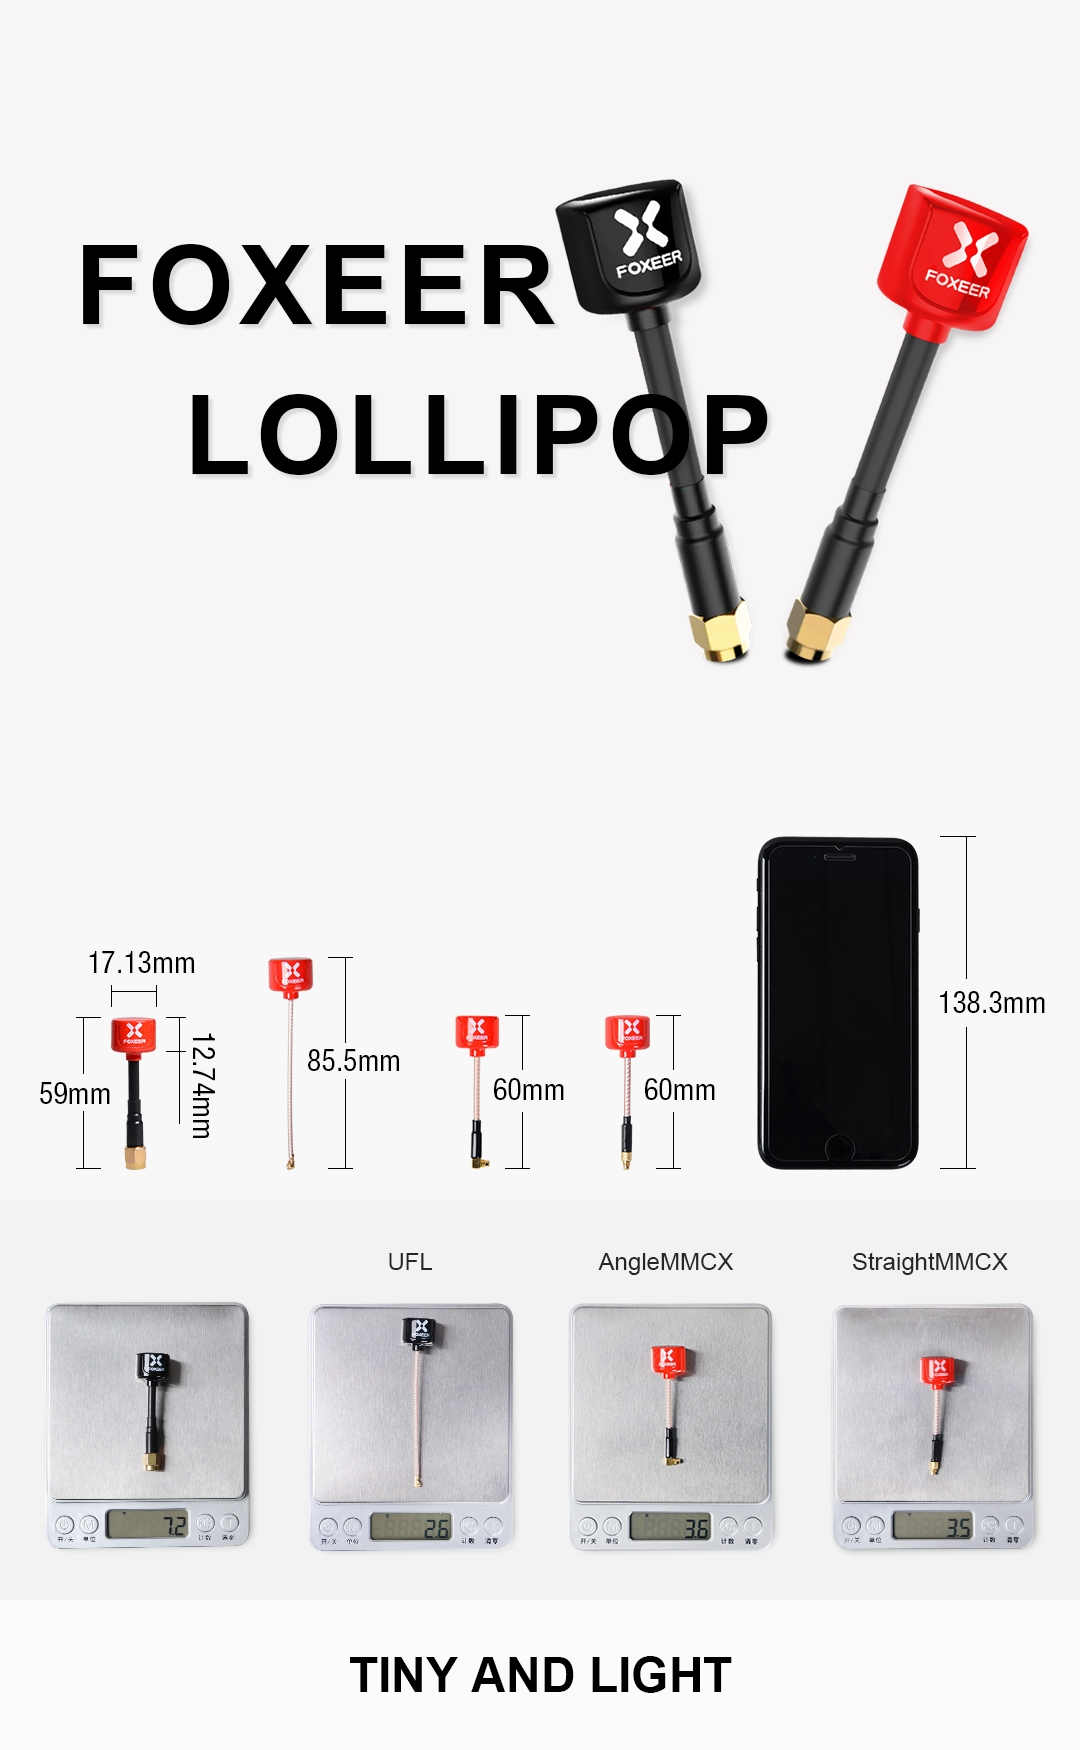 2pcs Foxeer Lollipop 85.5mm 5.8G 2.3dBi LHCP UFL Super Mini FPV Antenna Red/Black For RC Drone